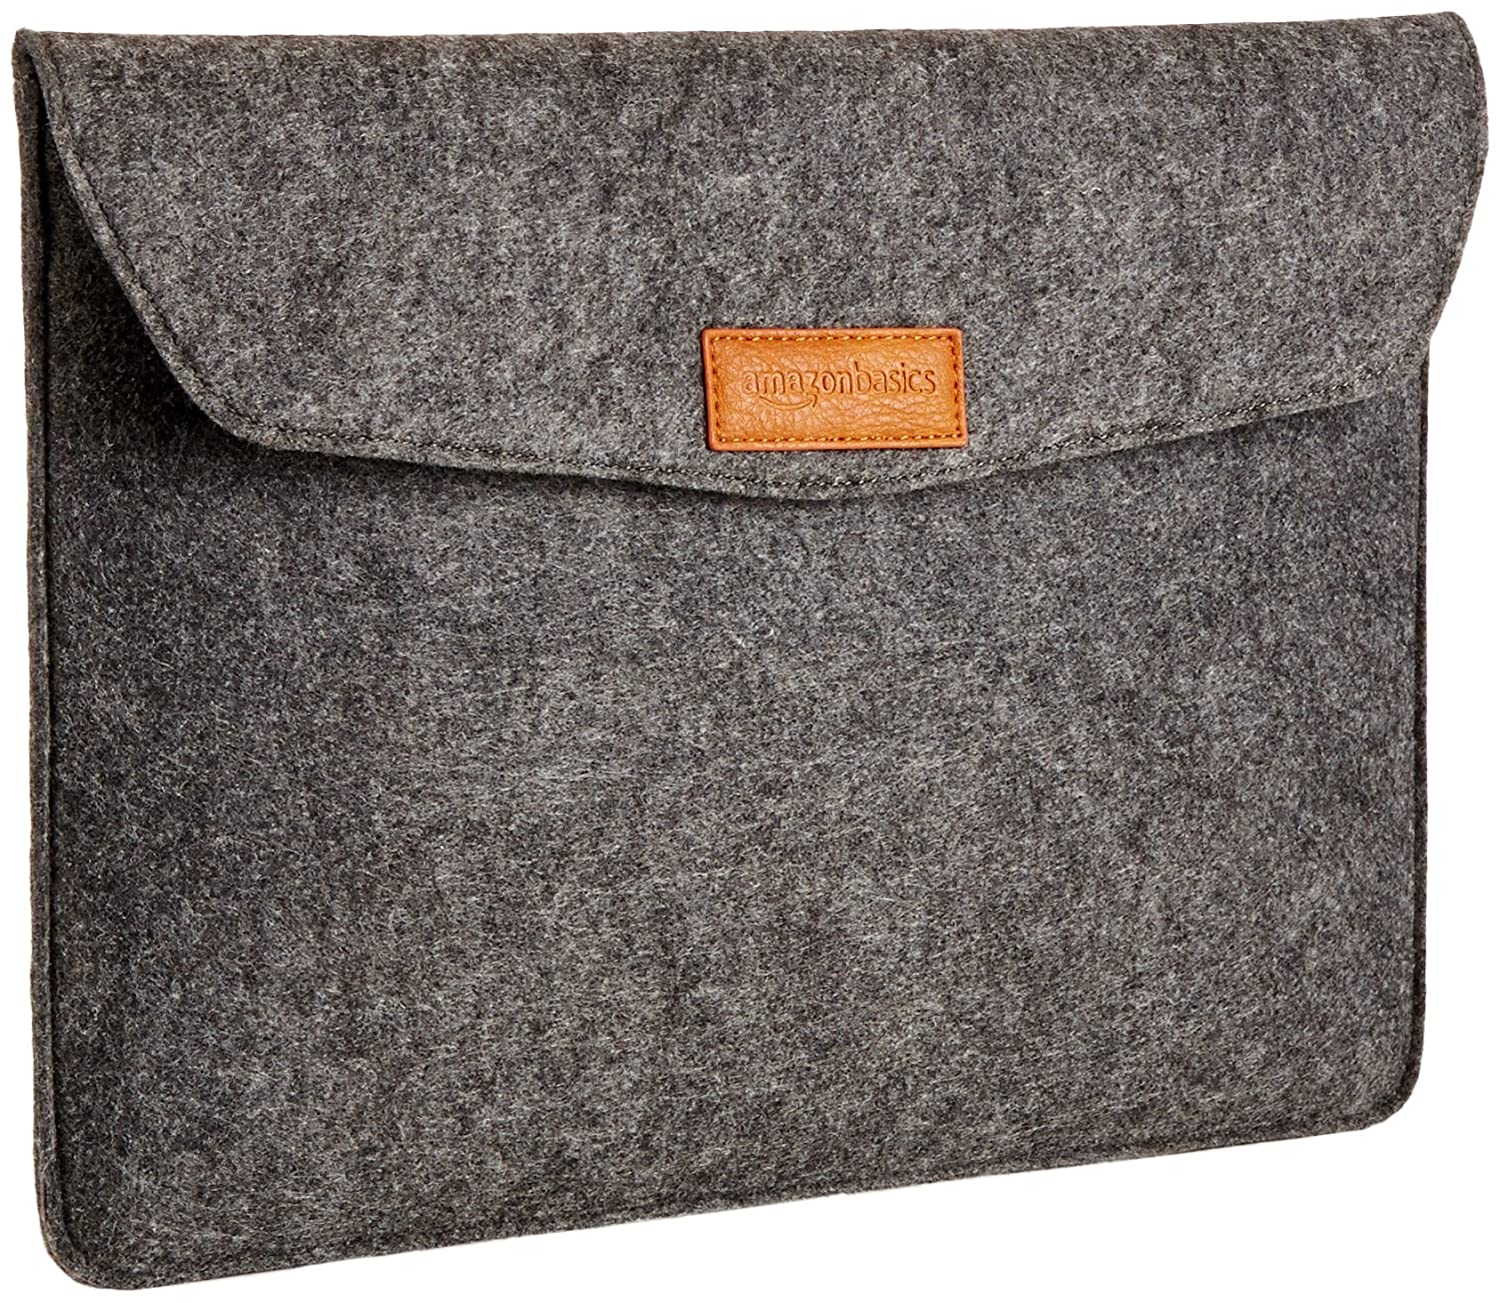 AmazonBasics 11-Inch Felt Laptop Sleeve - Charcoal NC1506105R3